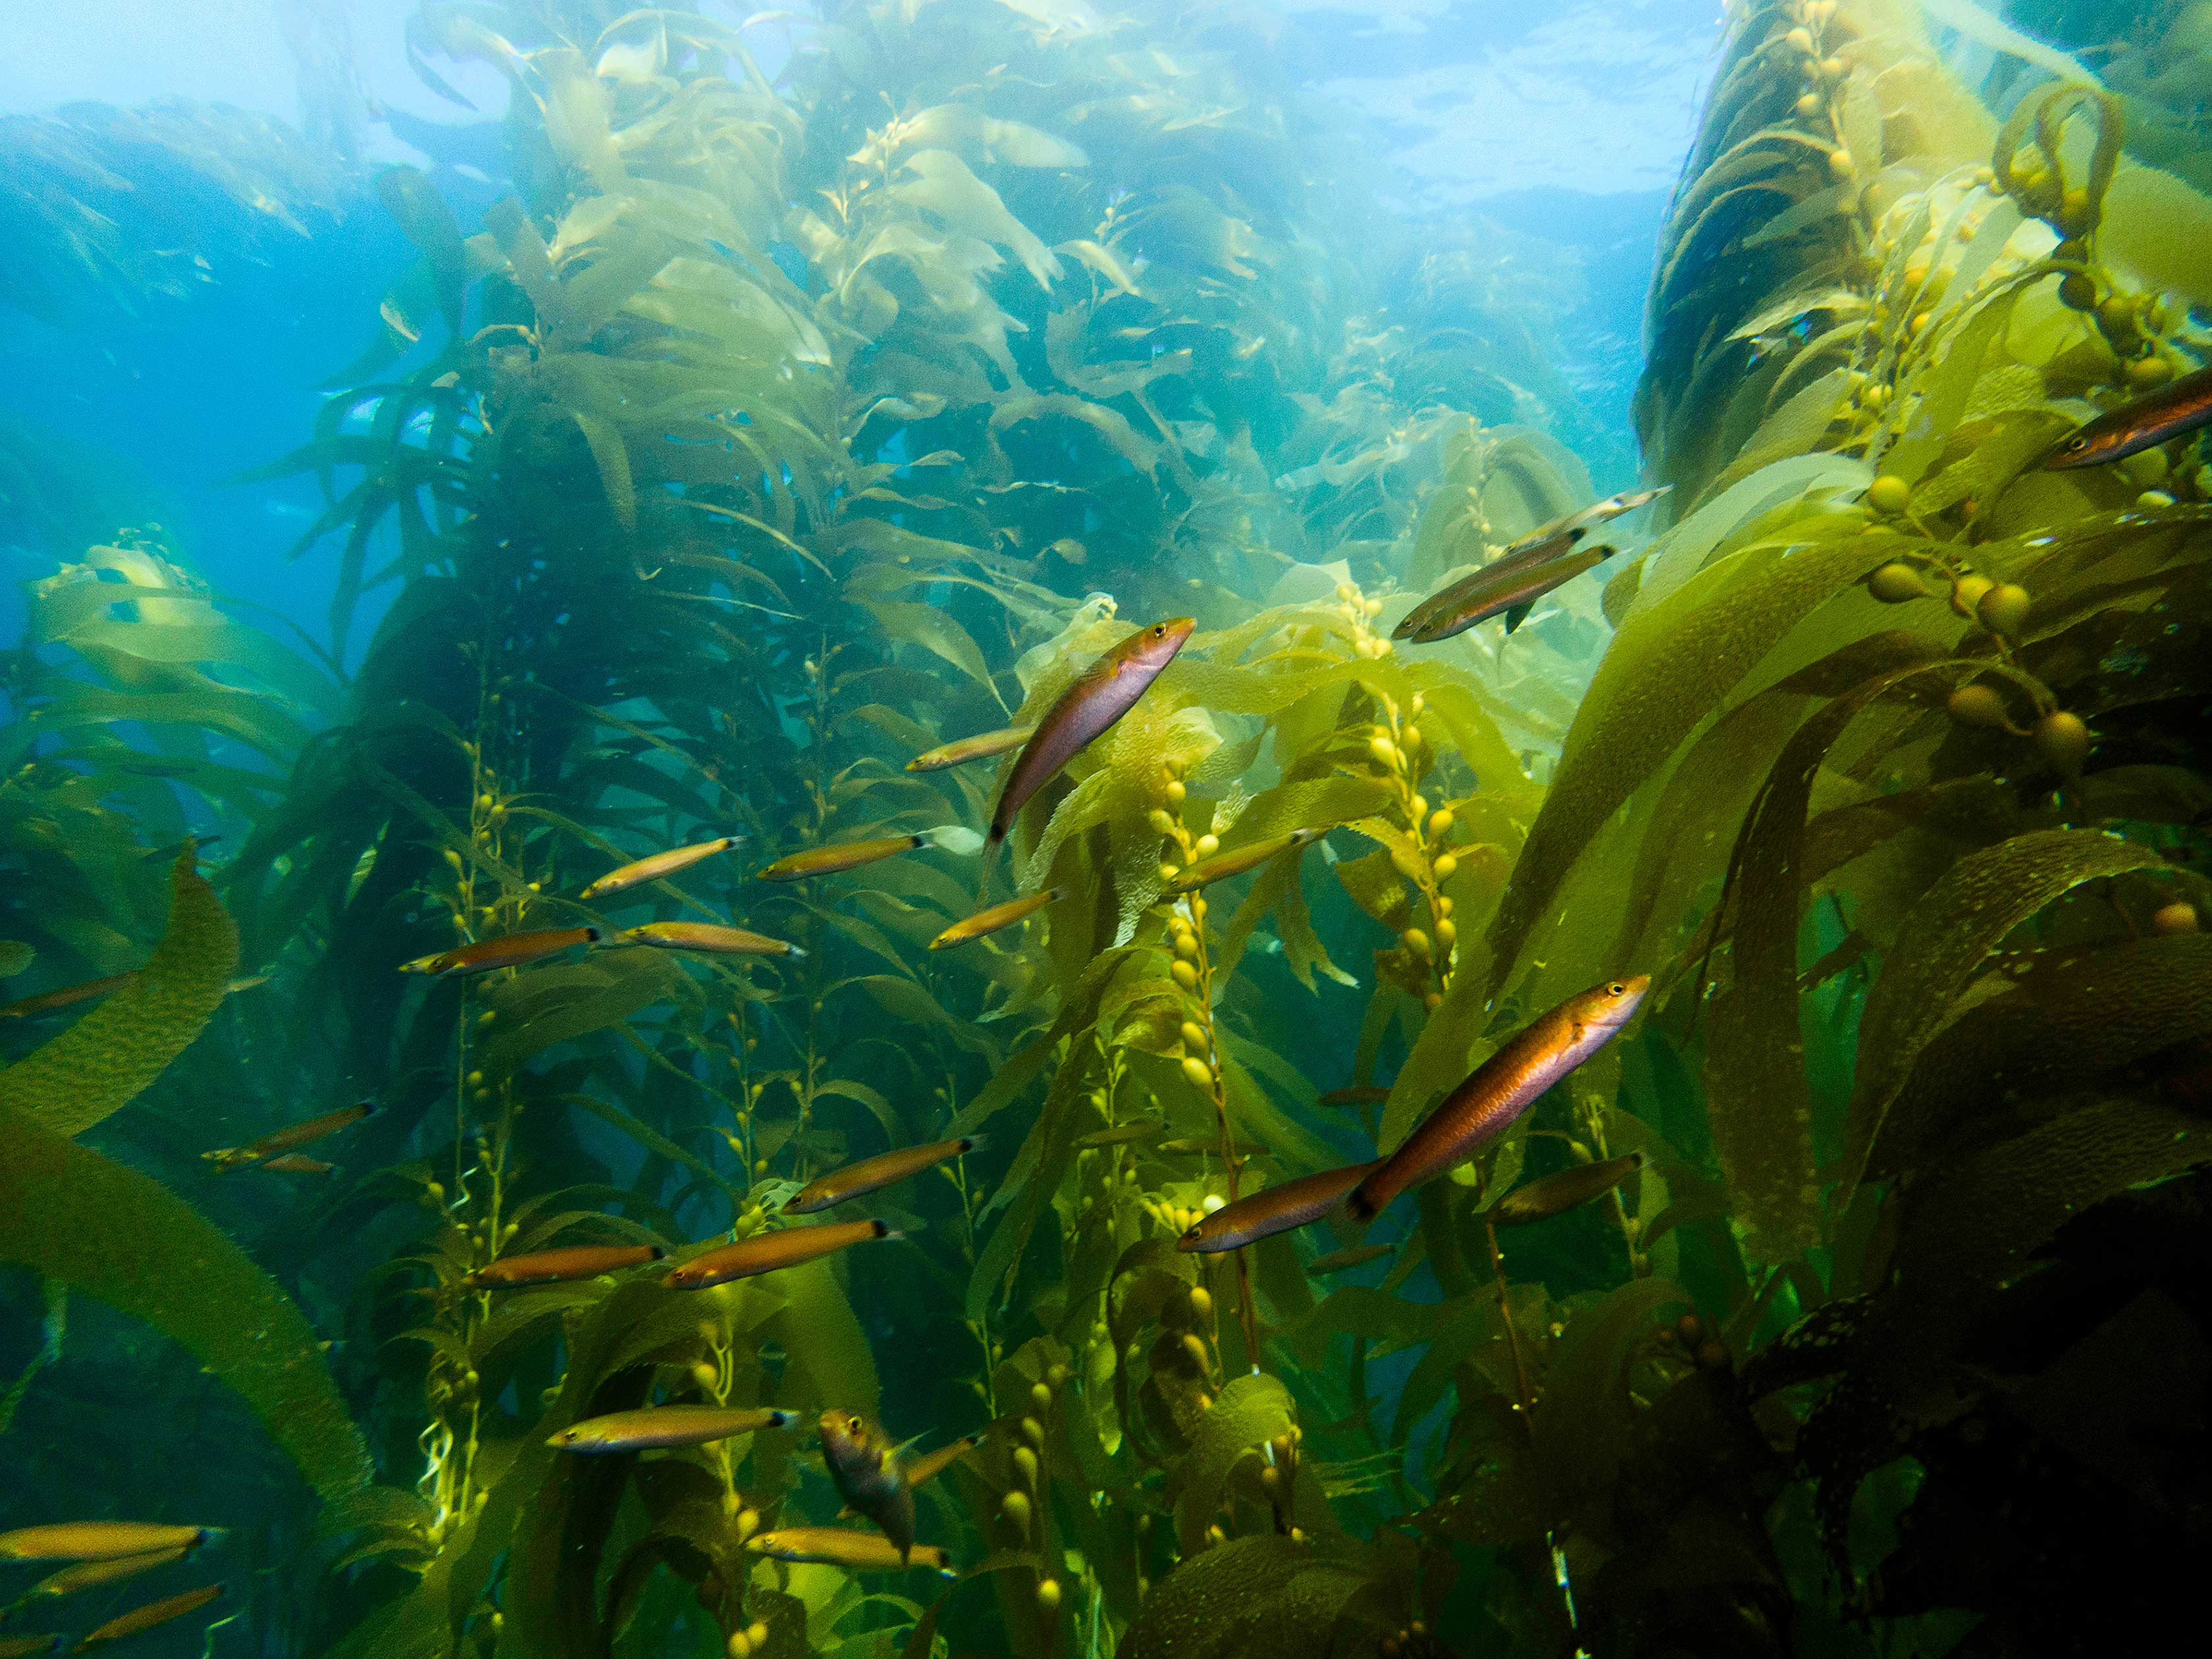 Giant kelp forest populated by kelp fish